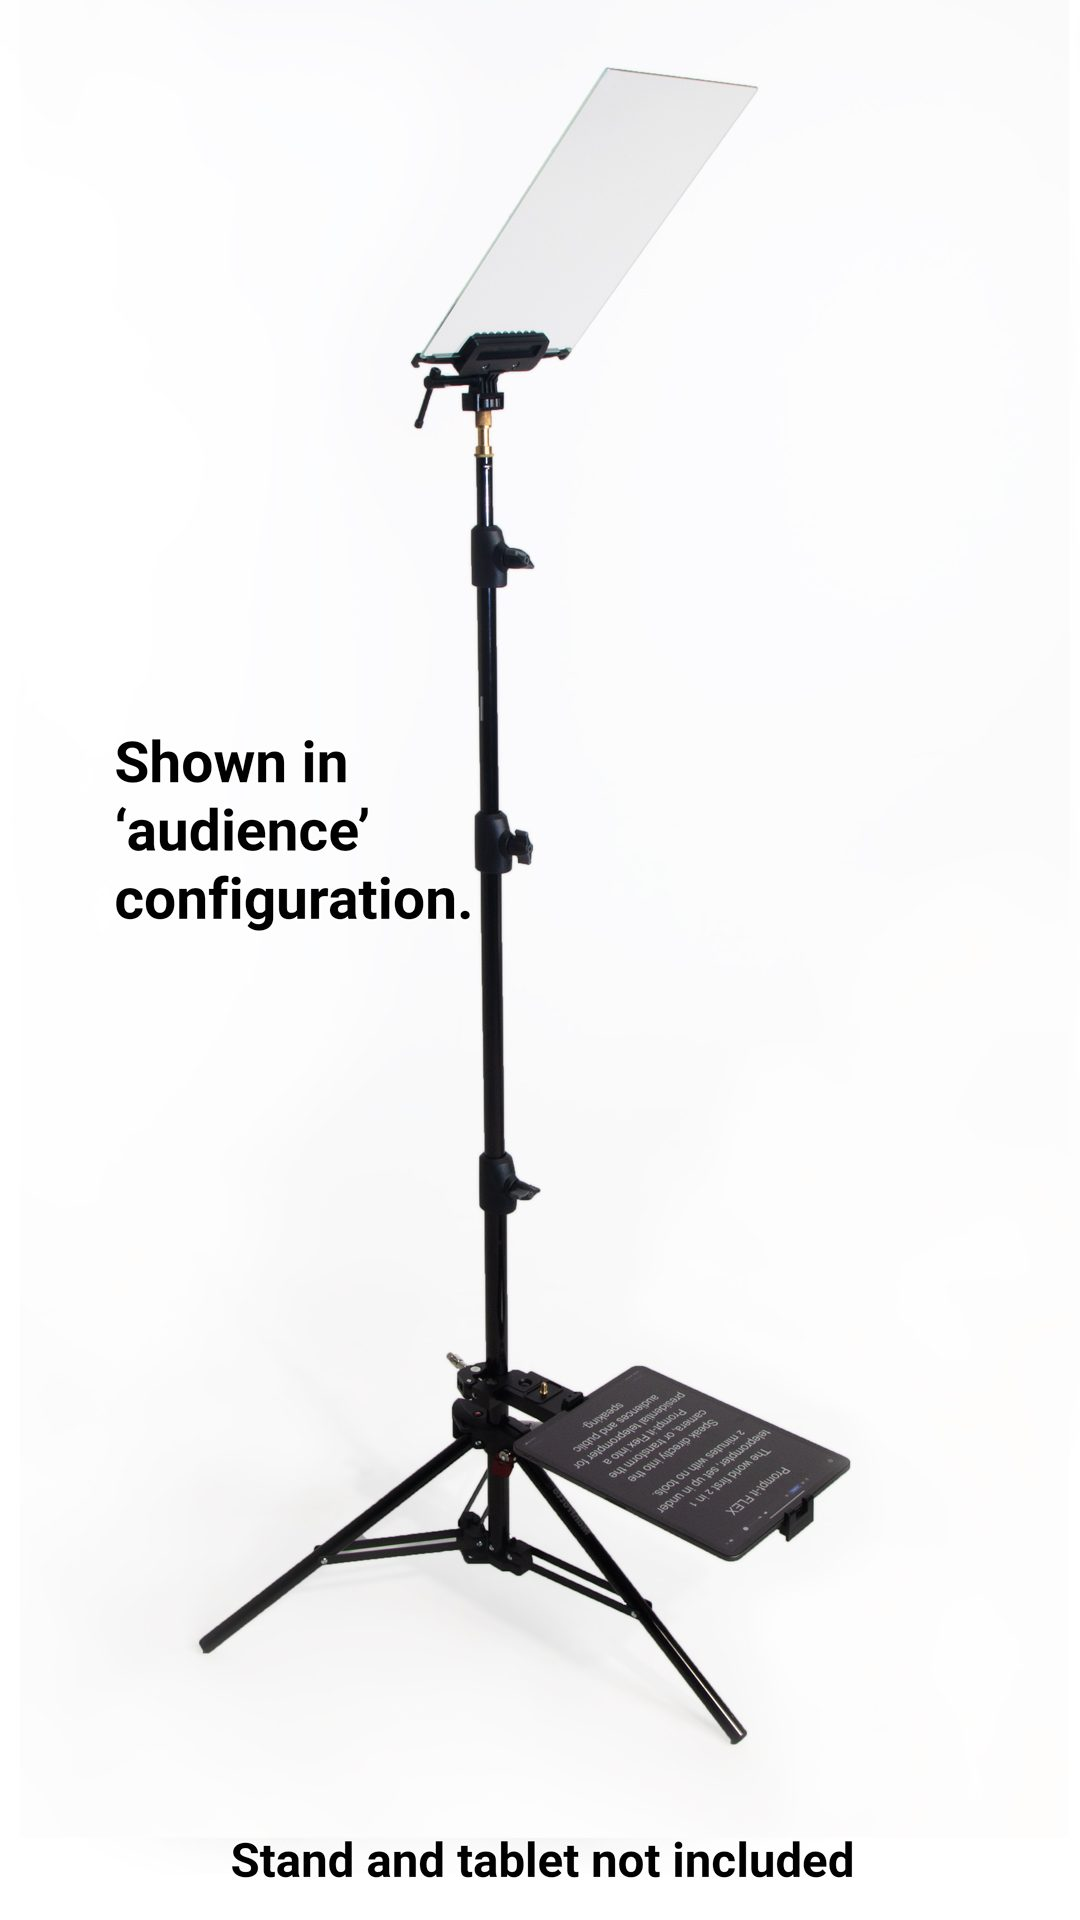 Flex Teleprompter in Audience configuration